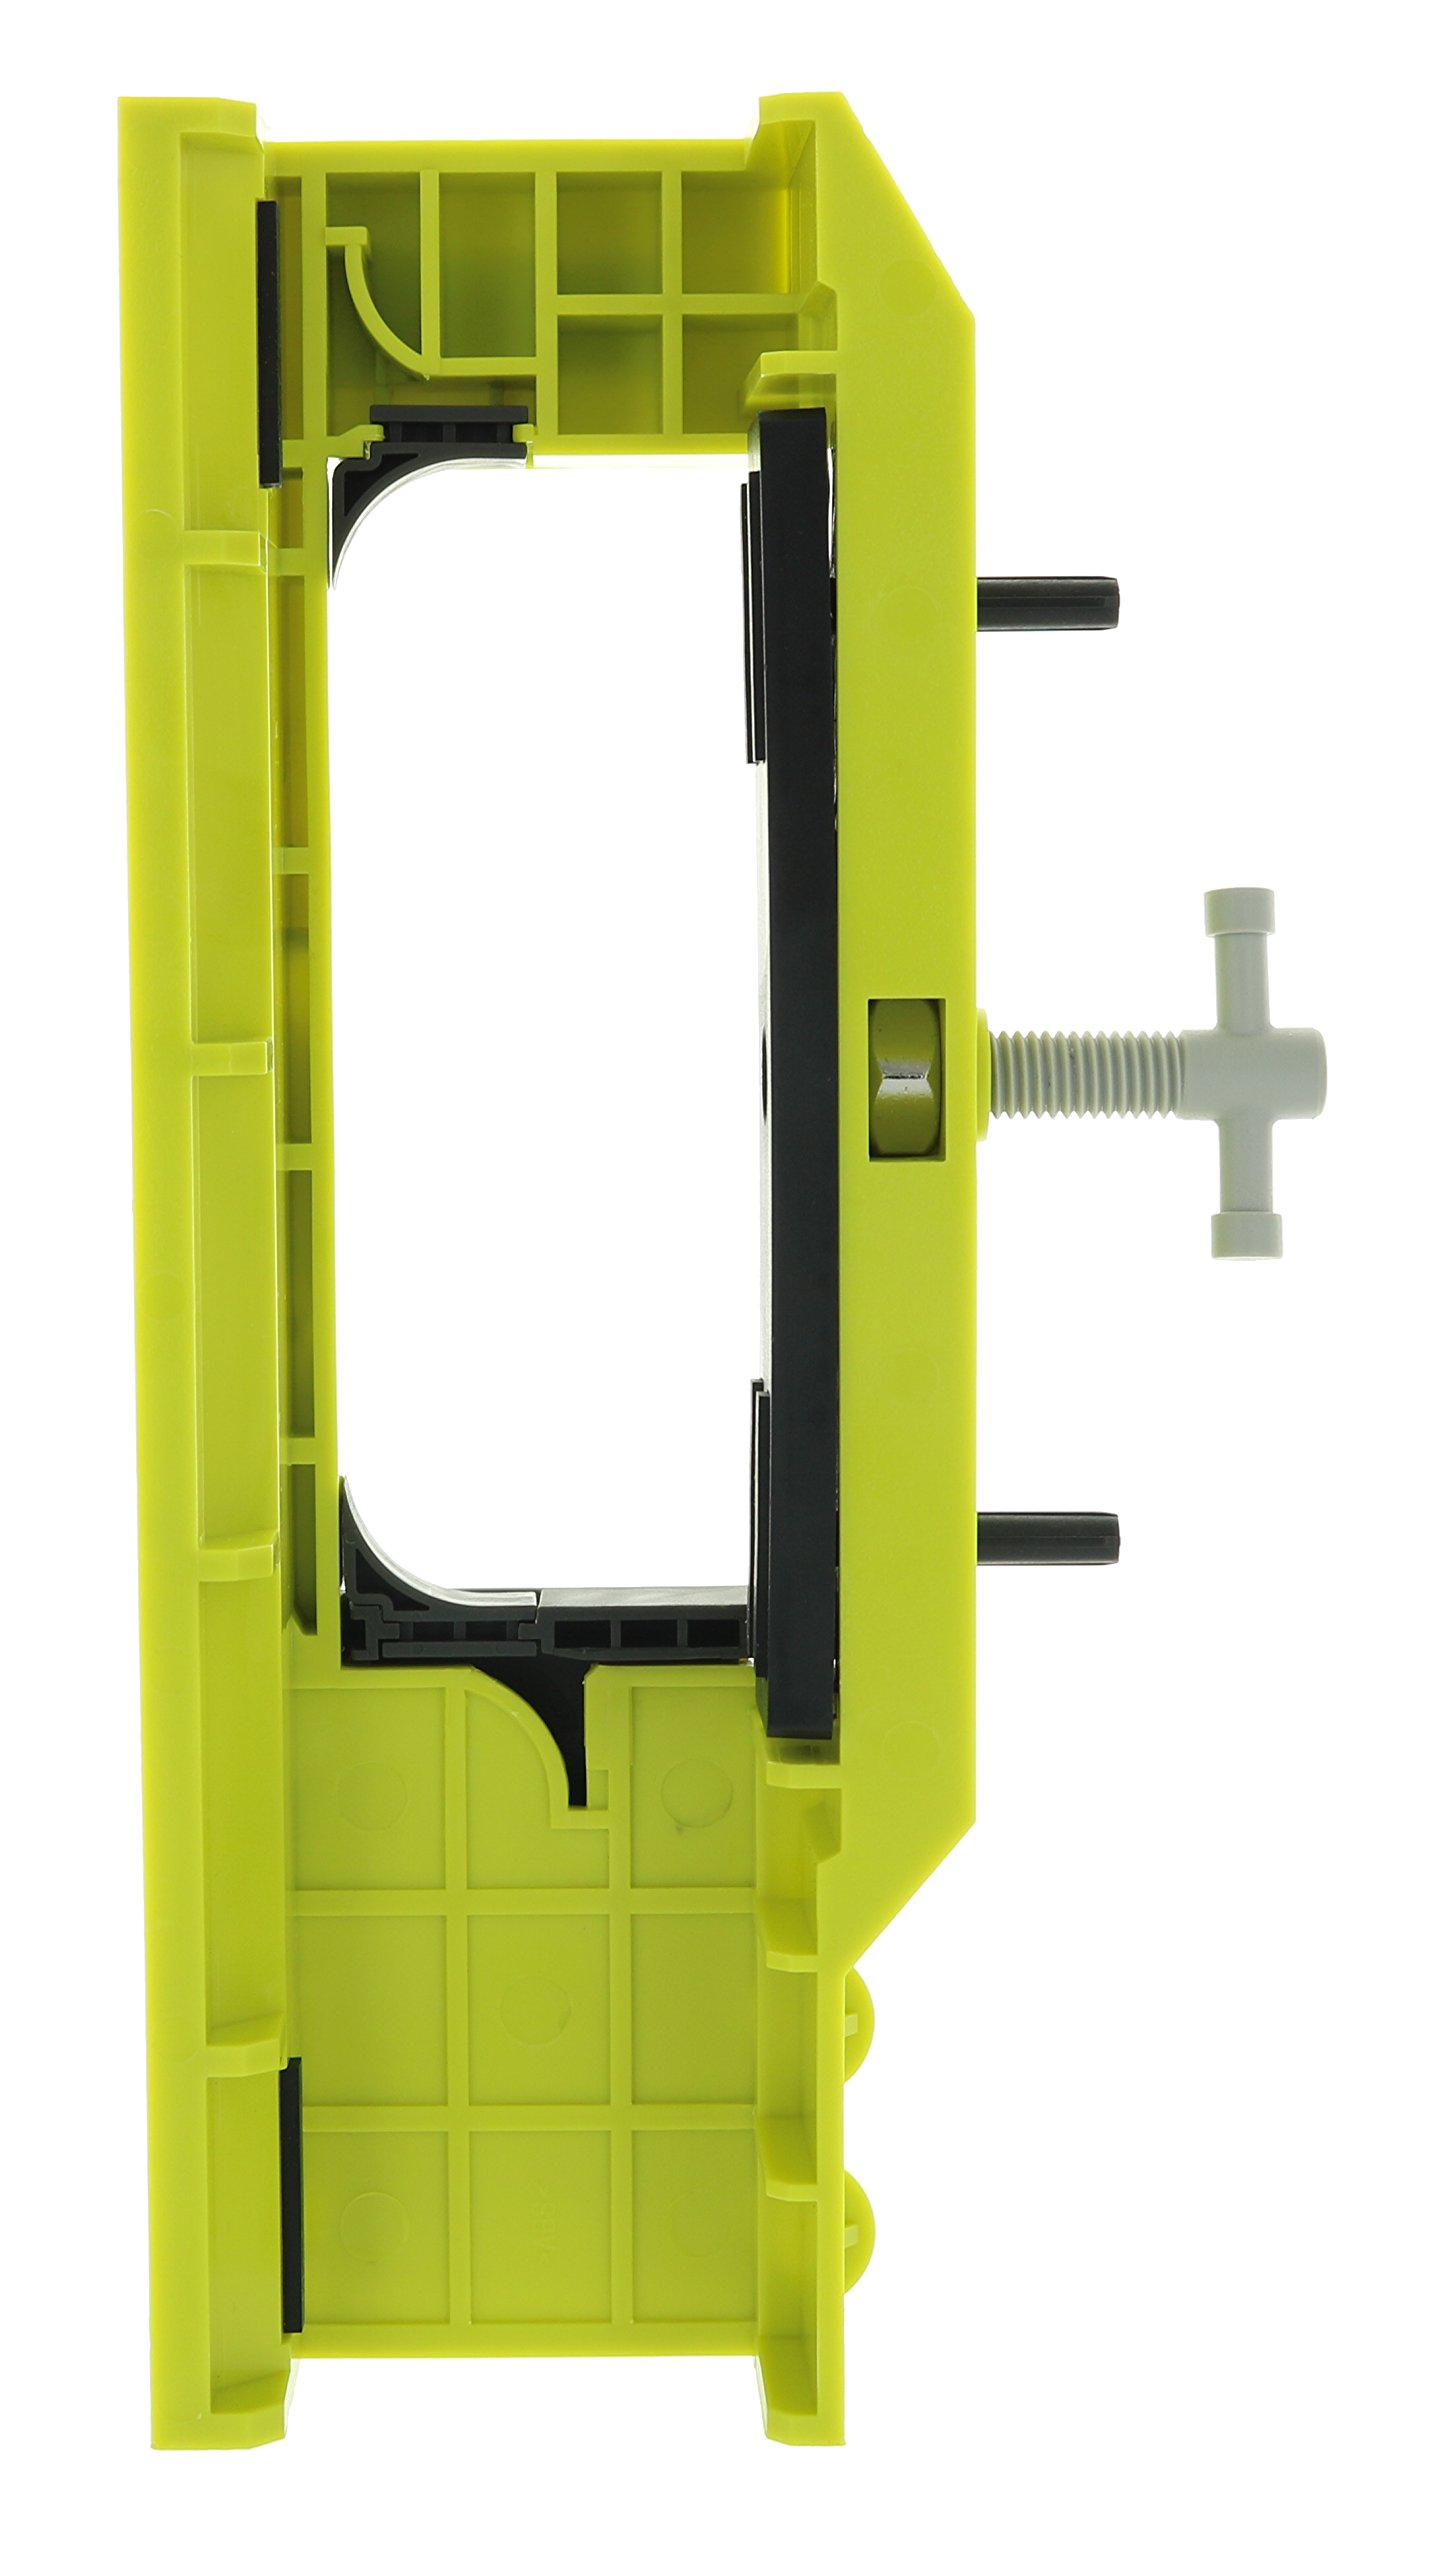 Ryobi A99ht2 Door Hinge Installation Kit Mortiser Template